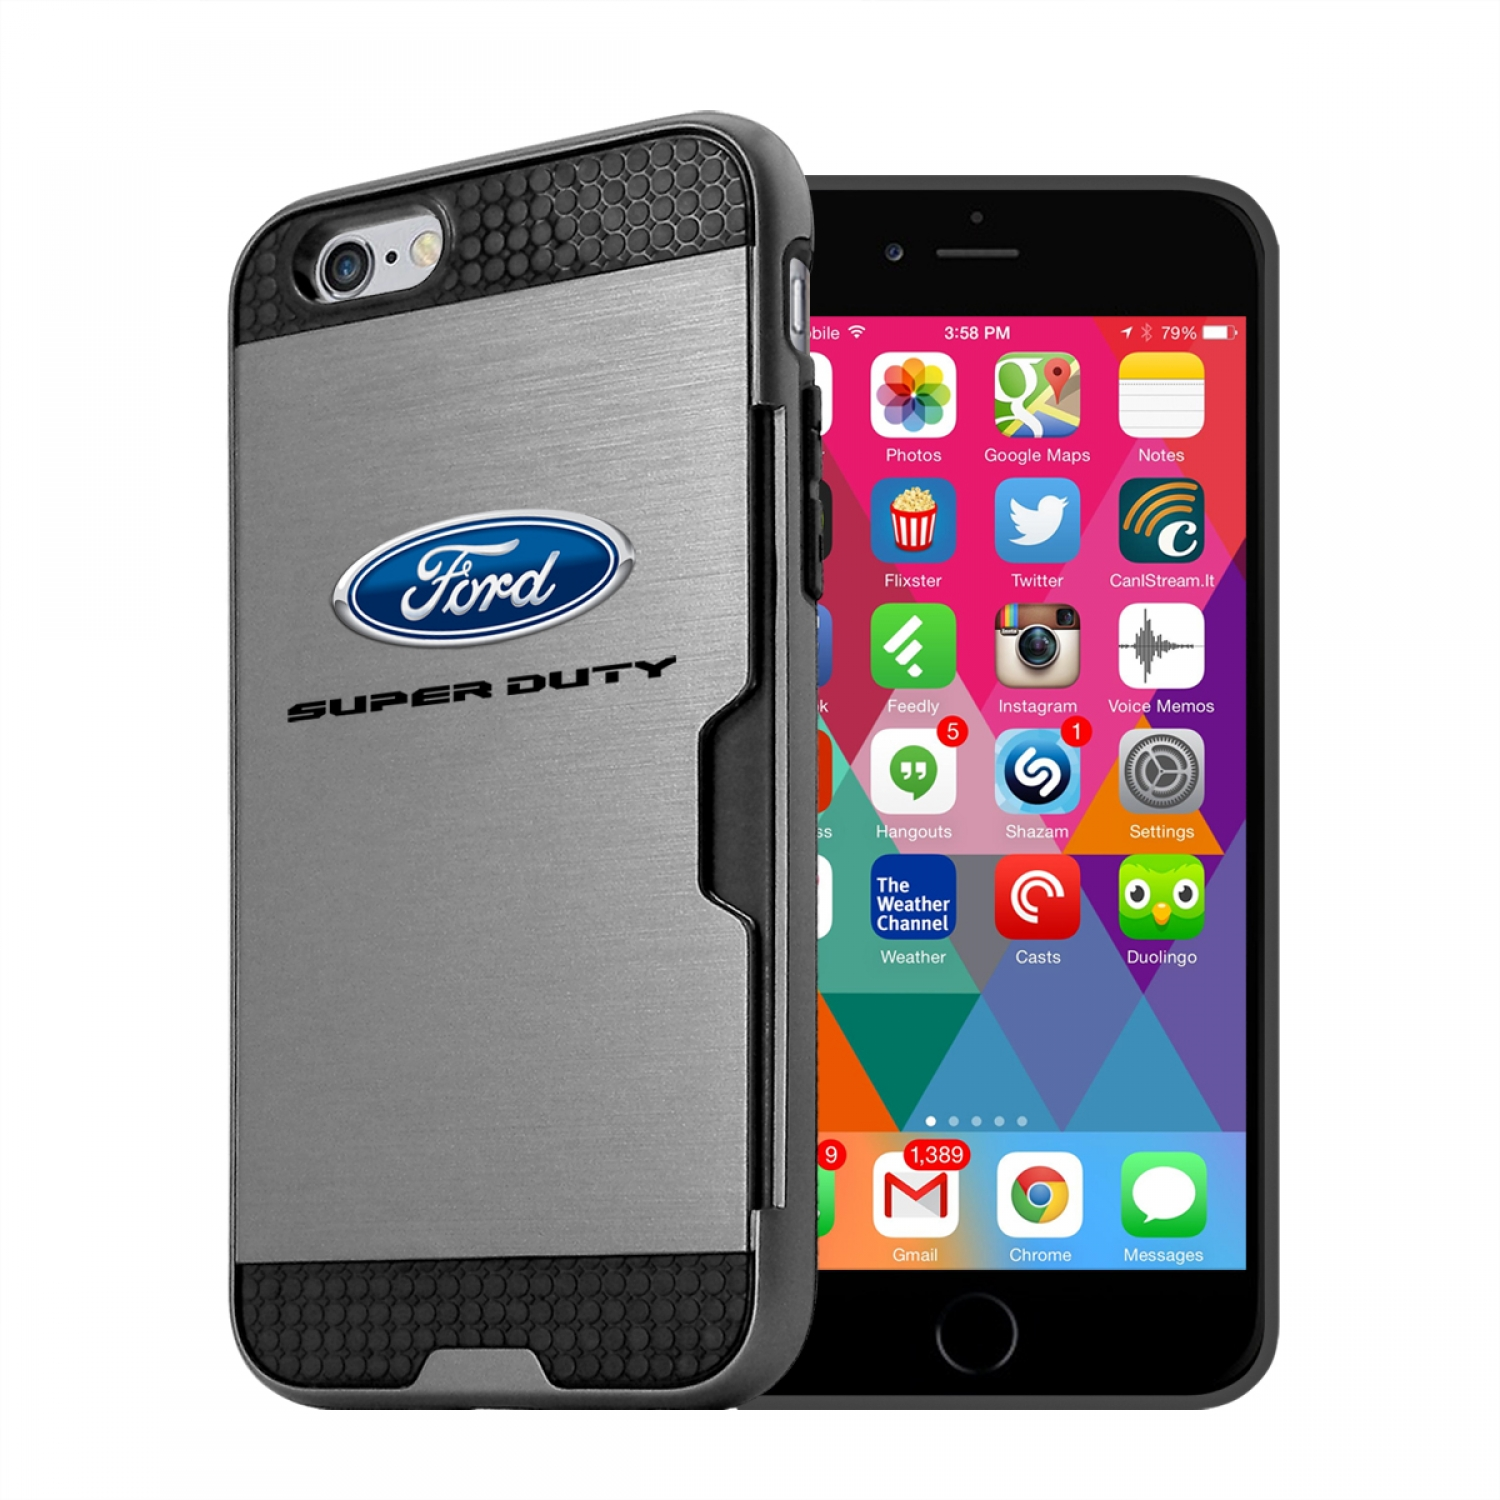 Ford Super Duty iPhone 6 6s Ultra Thin TPU Silver Phone Case with Credit Card Slot Wallet